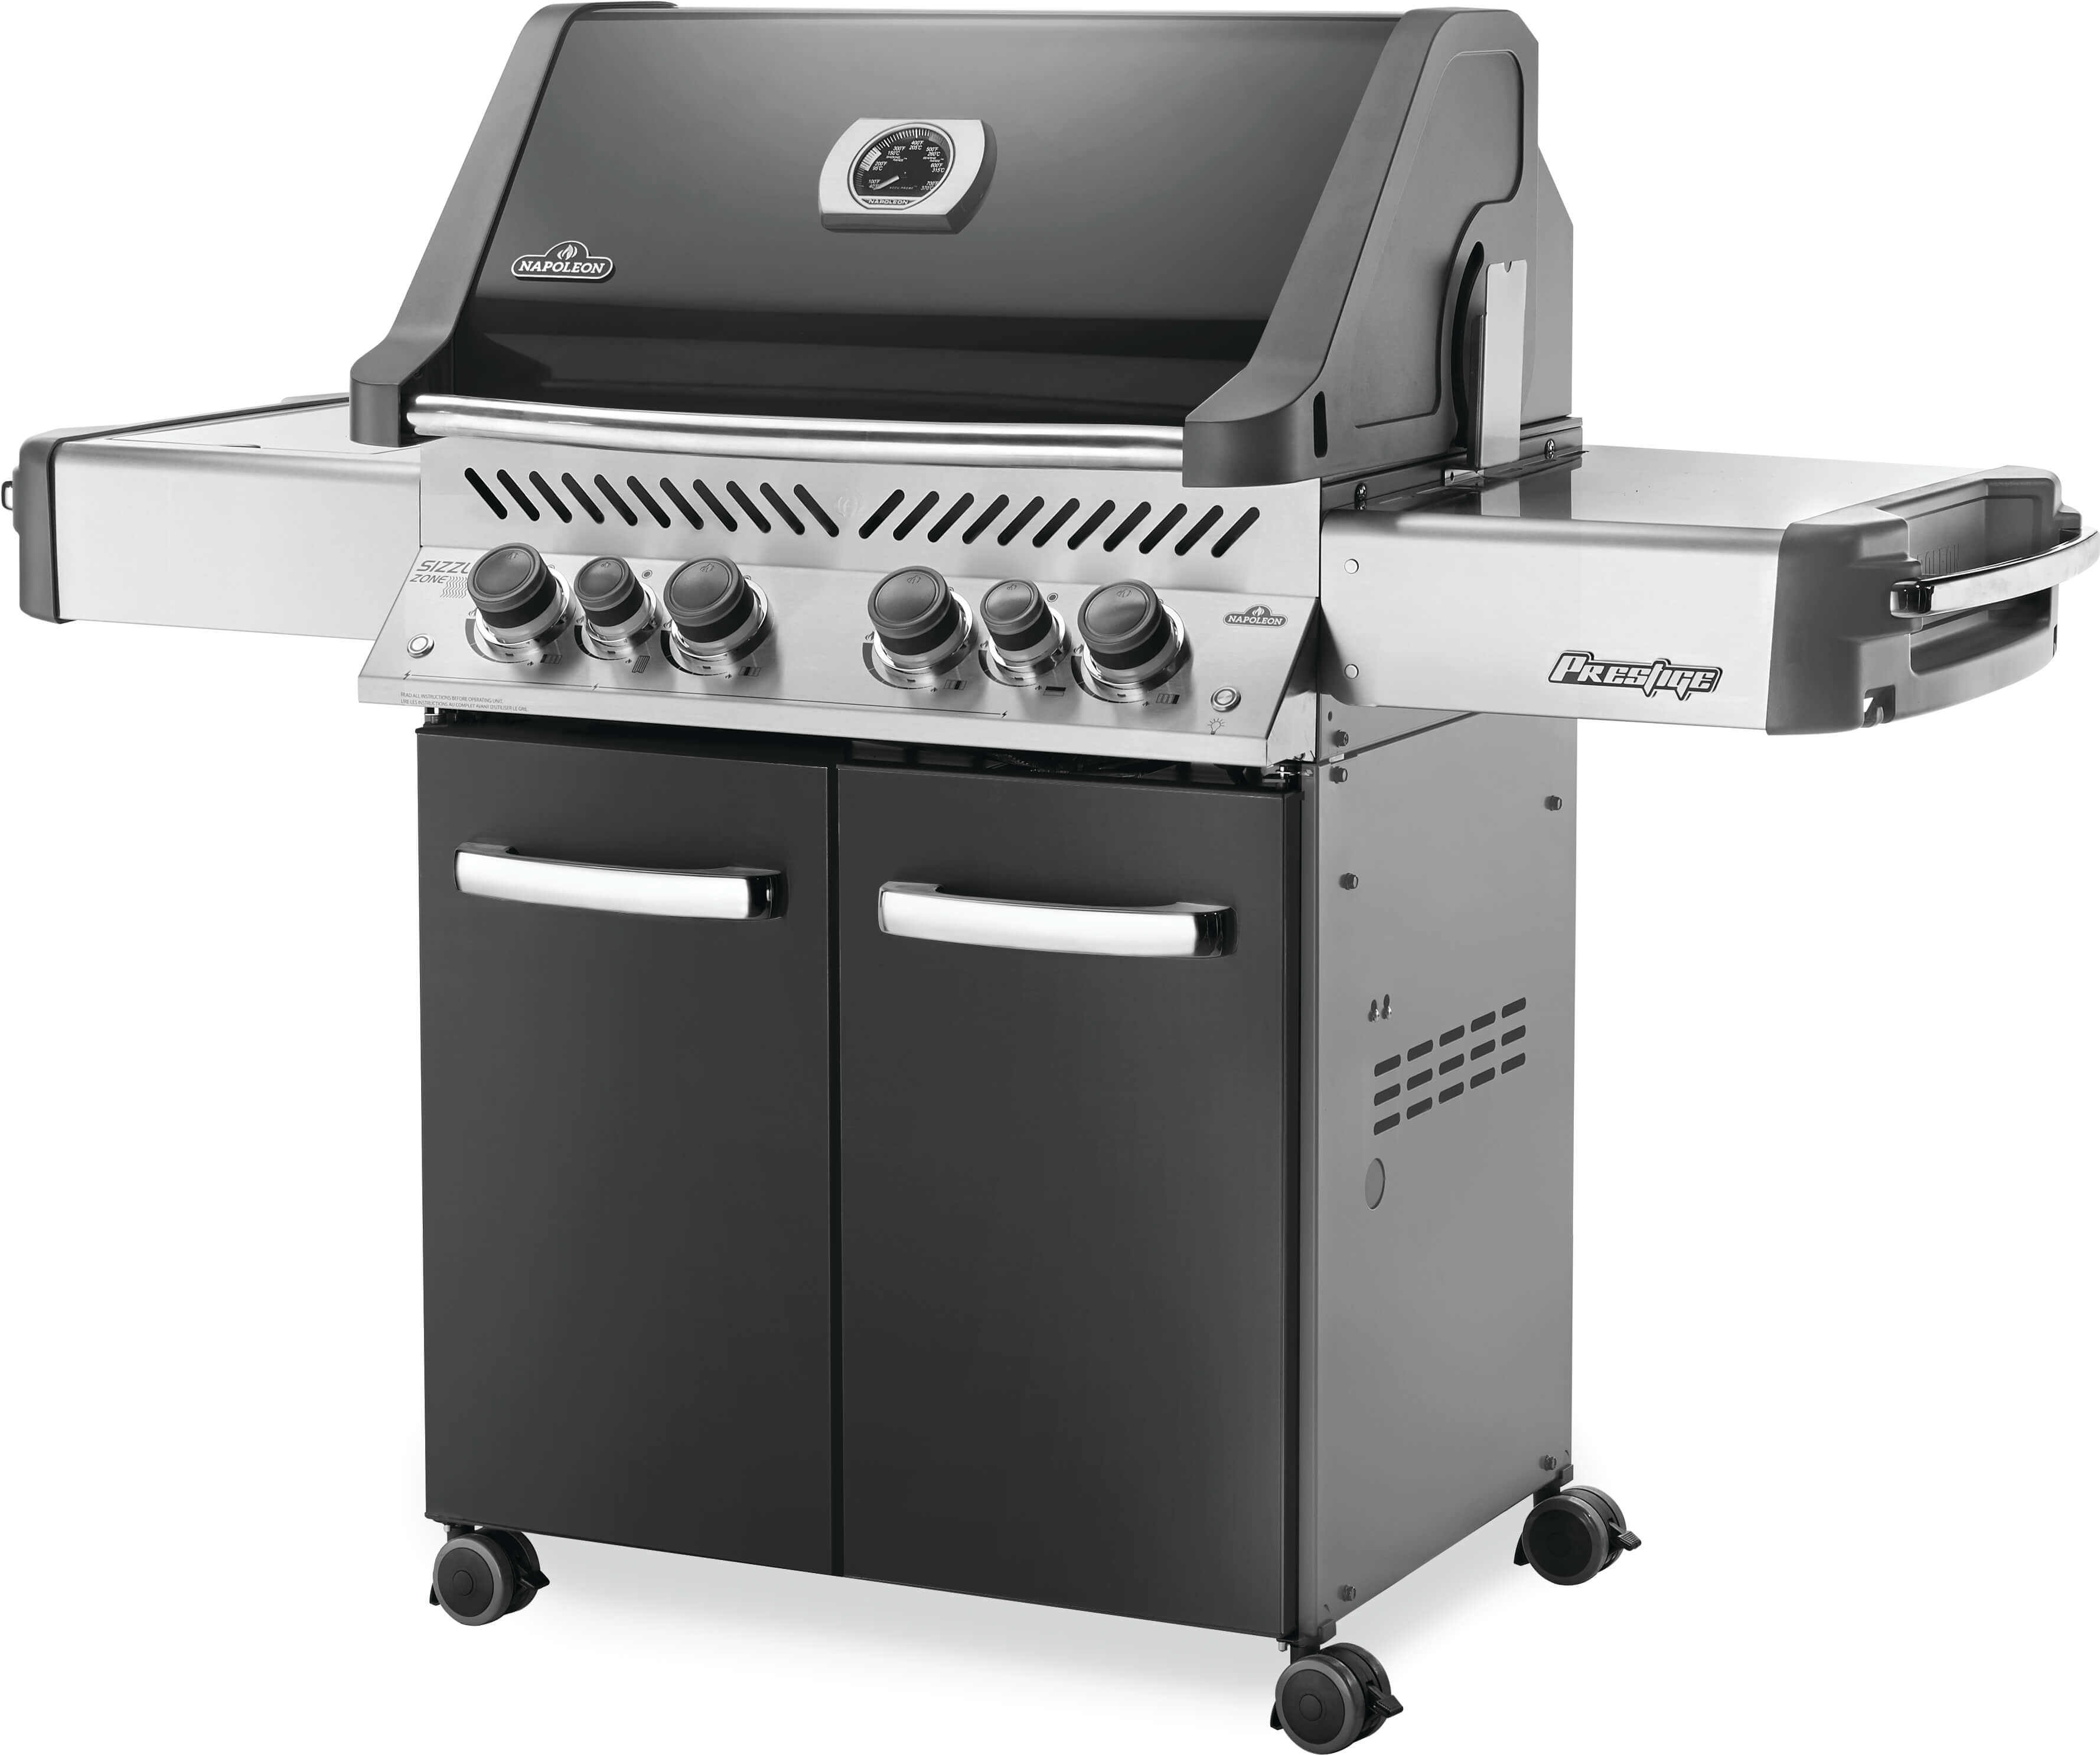 Prestige® 500 Propane Gas Grill with Infrared Side and Rear Burners, Grey